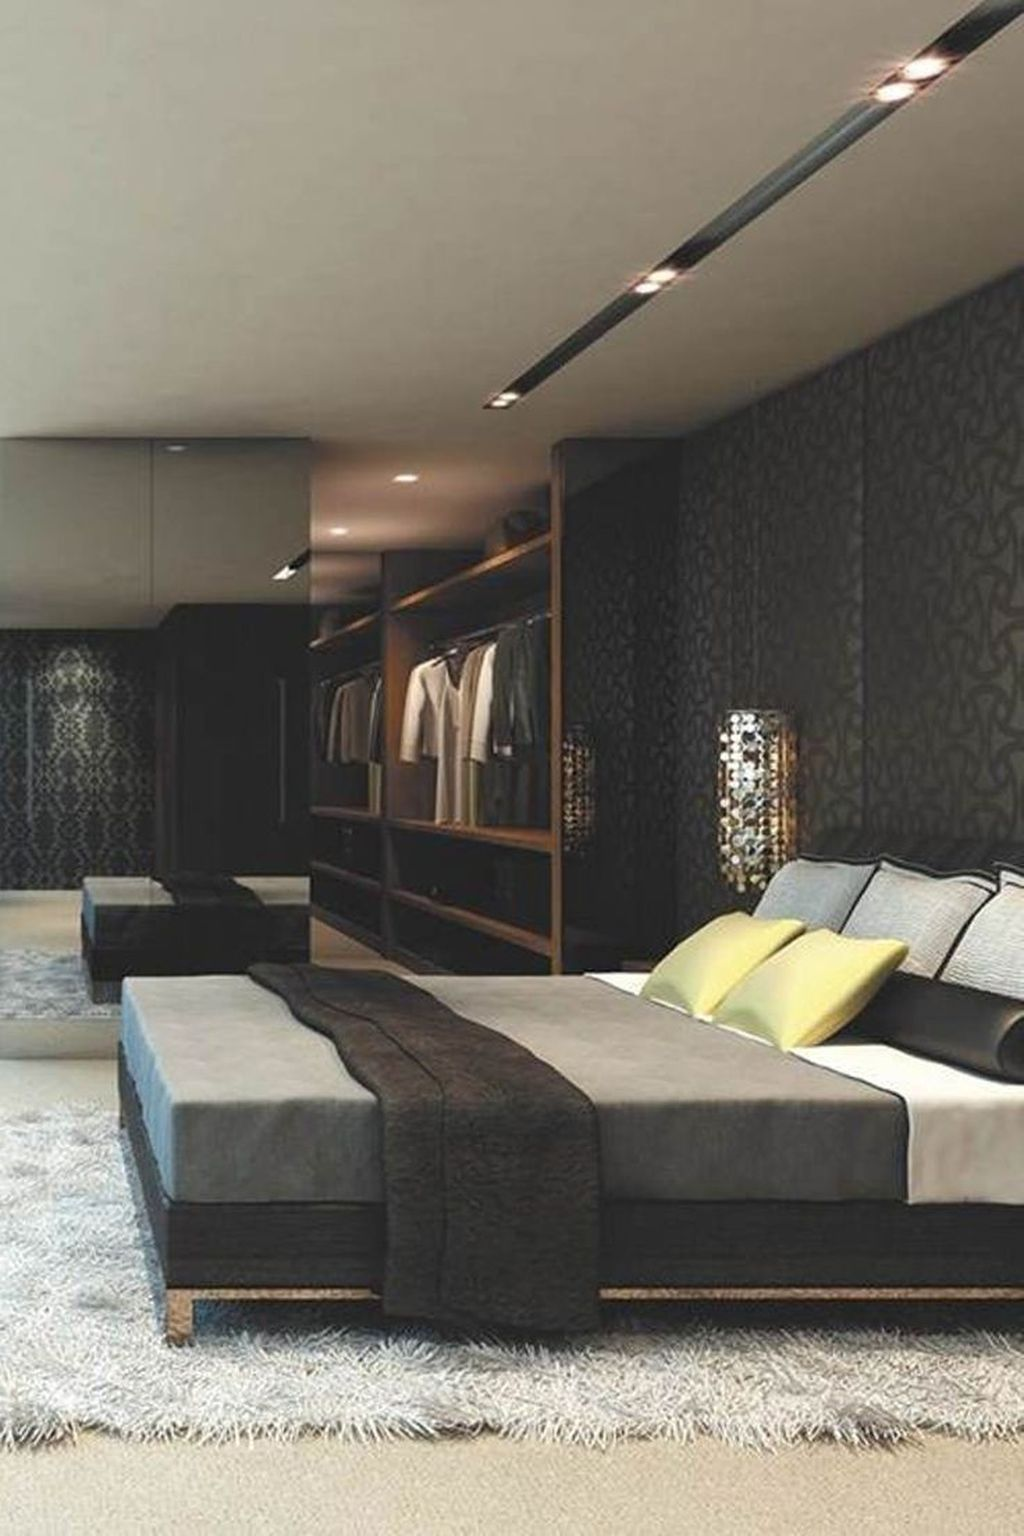 Awesome modern bedroom decorating ideas for men mens grey with dark wood walls and flooring unique wall also kumar interior  specialized in residential interiors  cinteriors rh pinterest